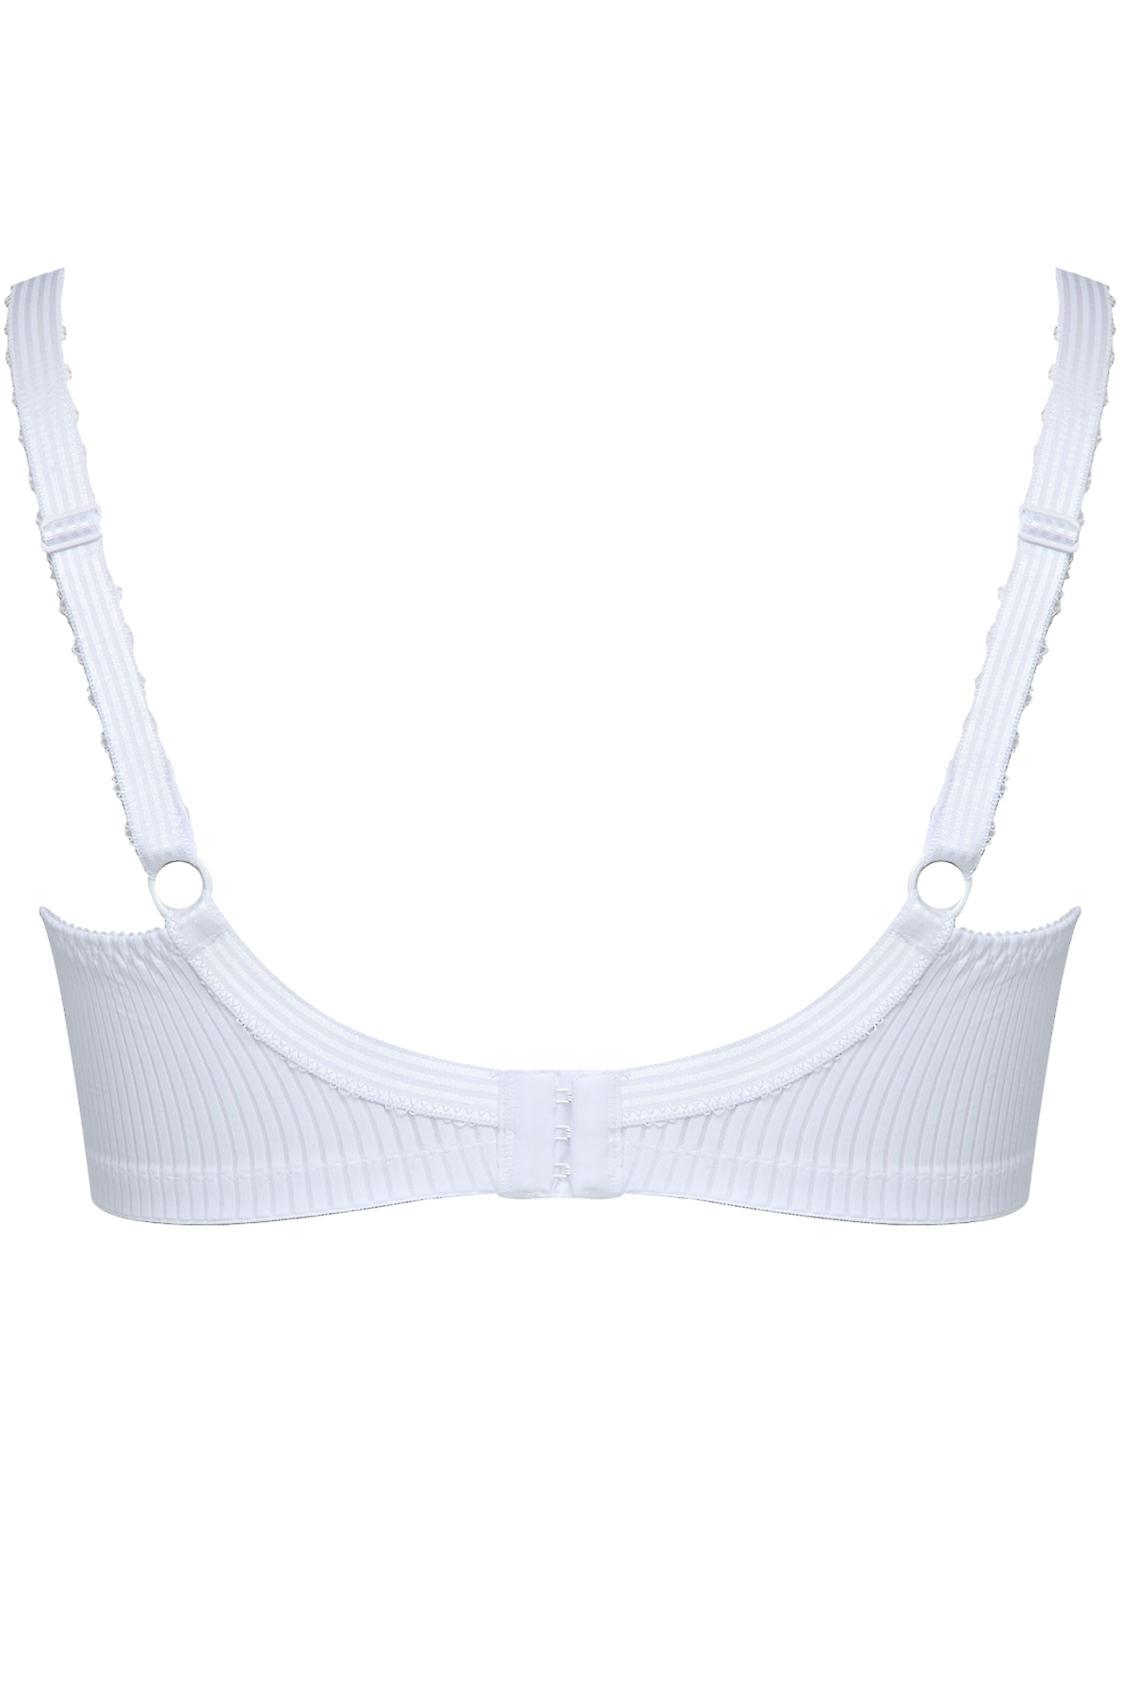 BESTFORM White Modern Comfort Non-Wired Bra